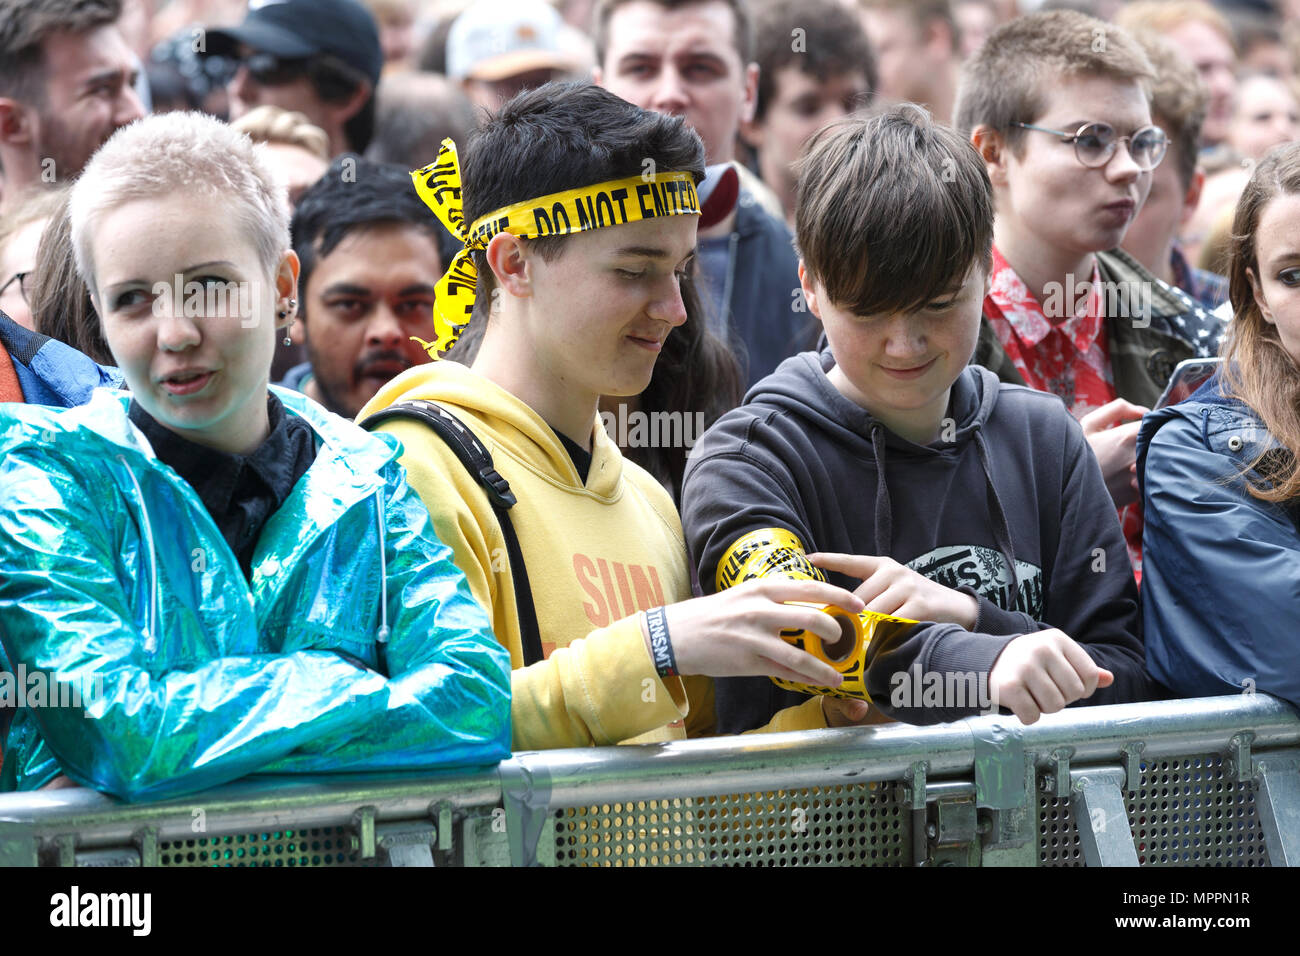 Teenage boys in the front row at a music festival. One is wrapping the other's arm in 'do not enter' novelty tape. - Stock Image